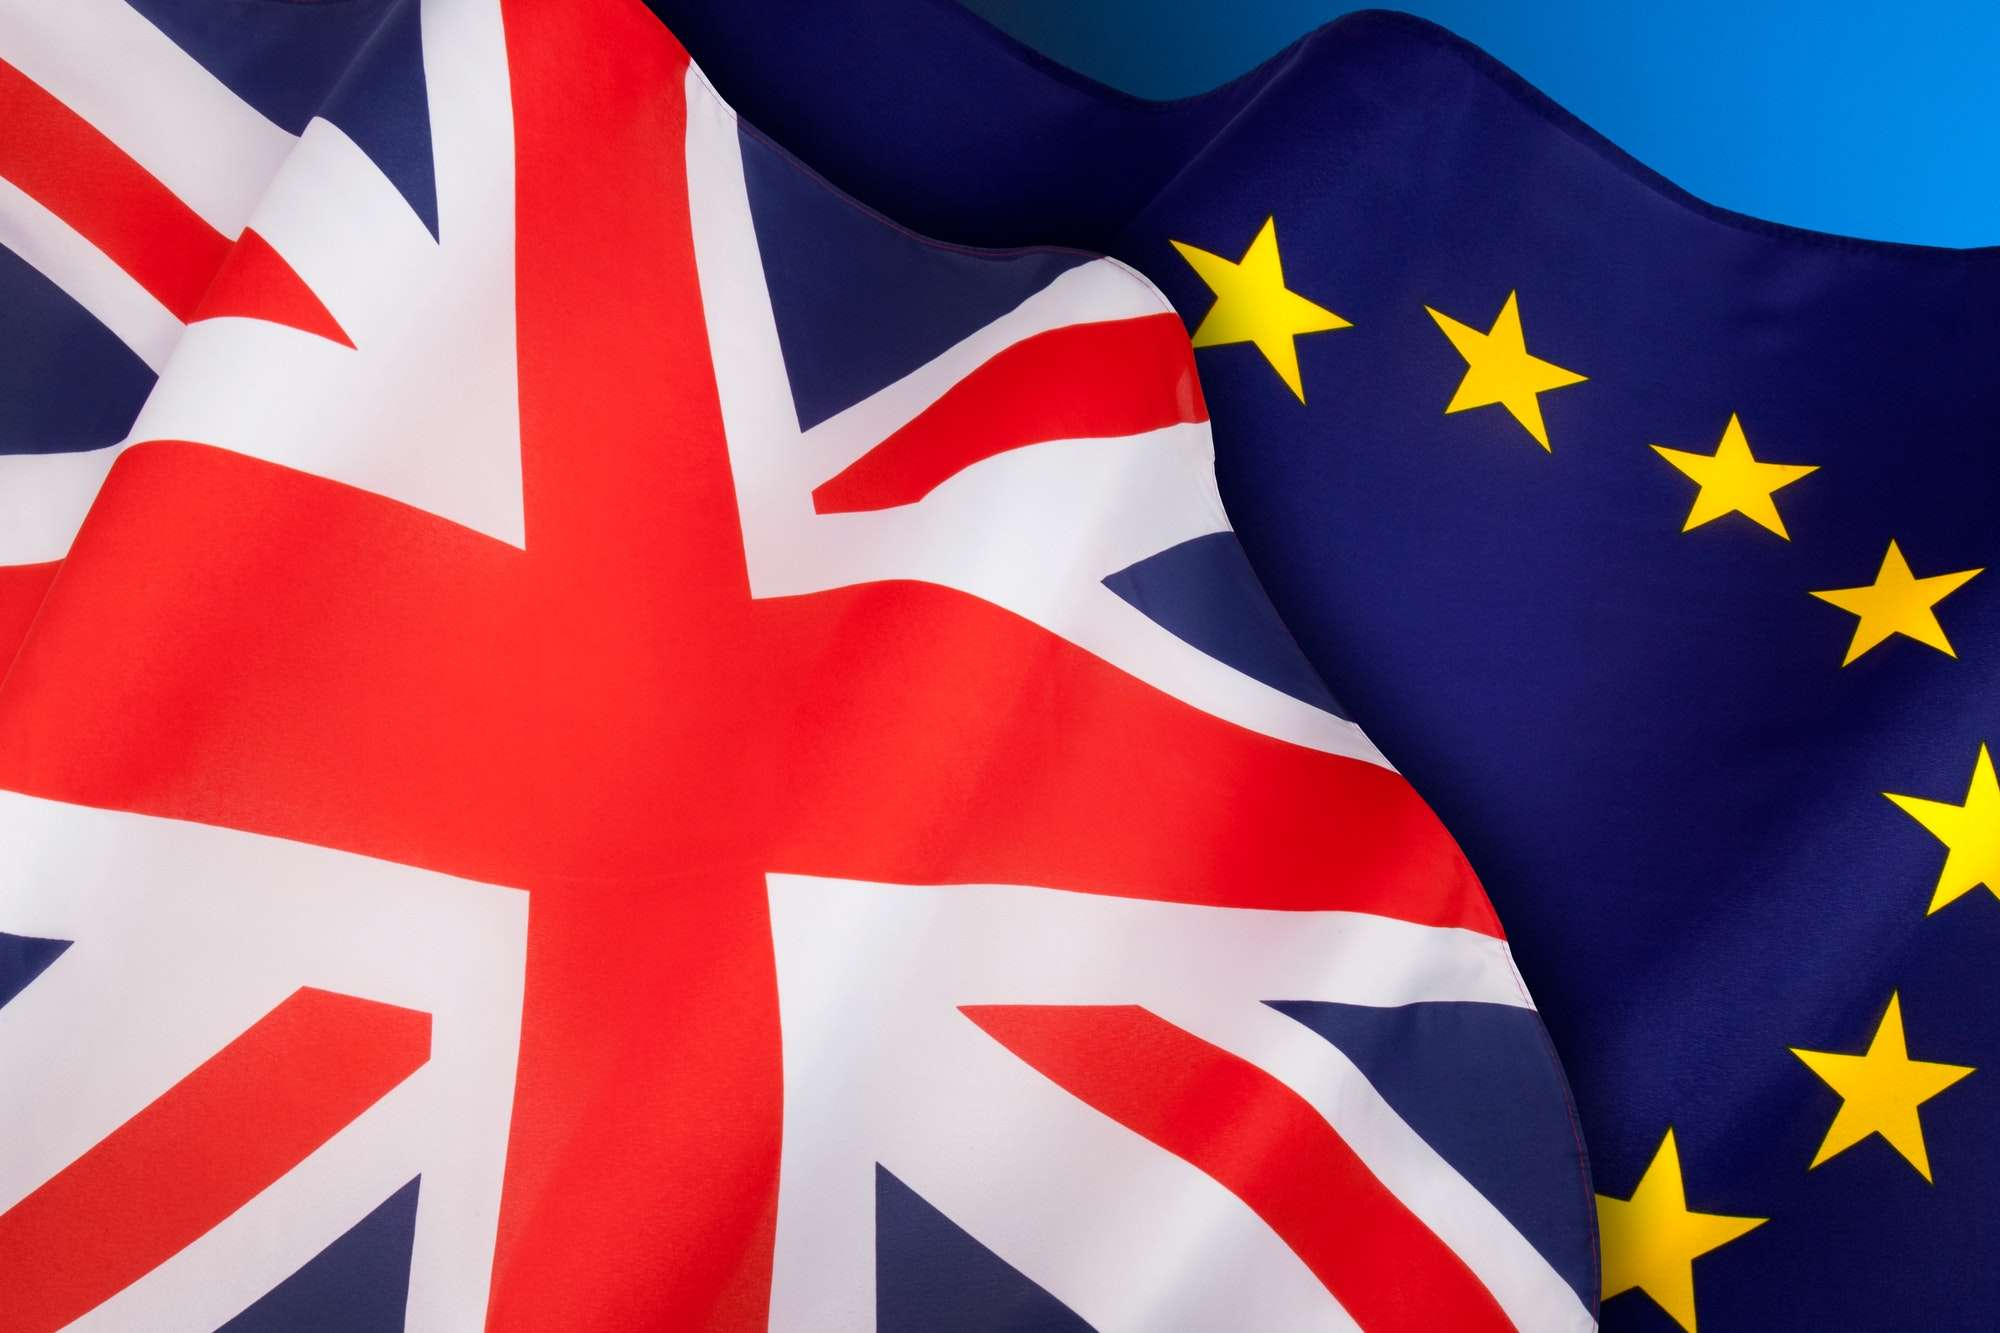 BREXIT - The flags of the United Kingdom of Great Britain and the European Union.